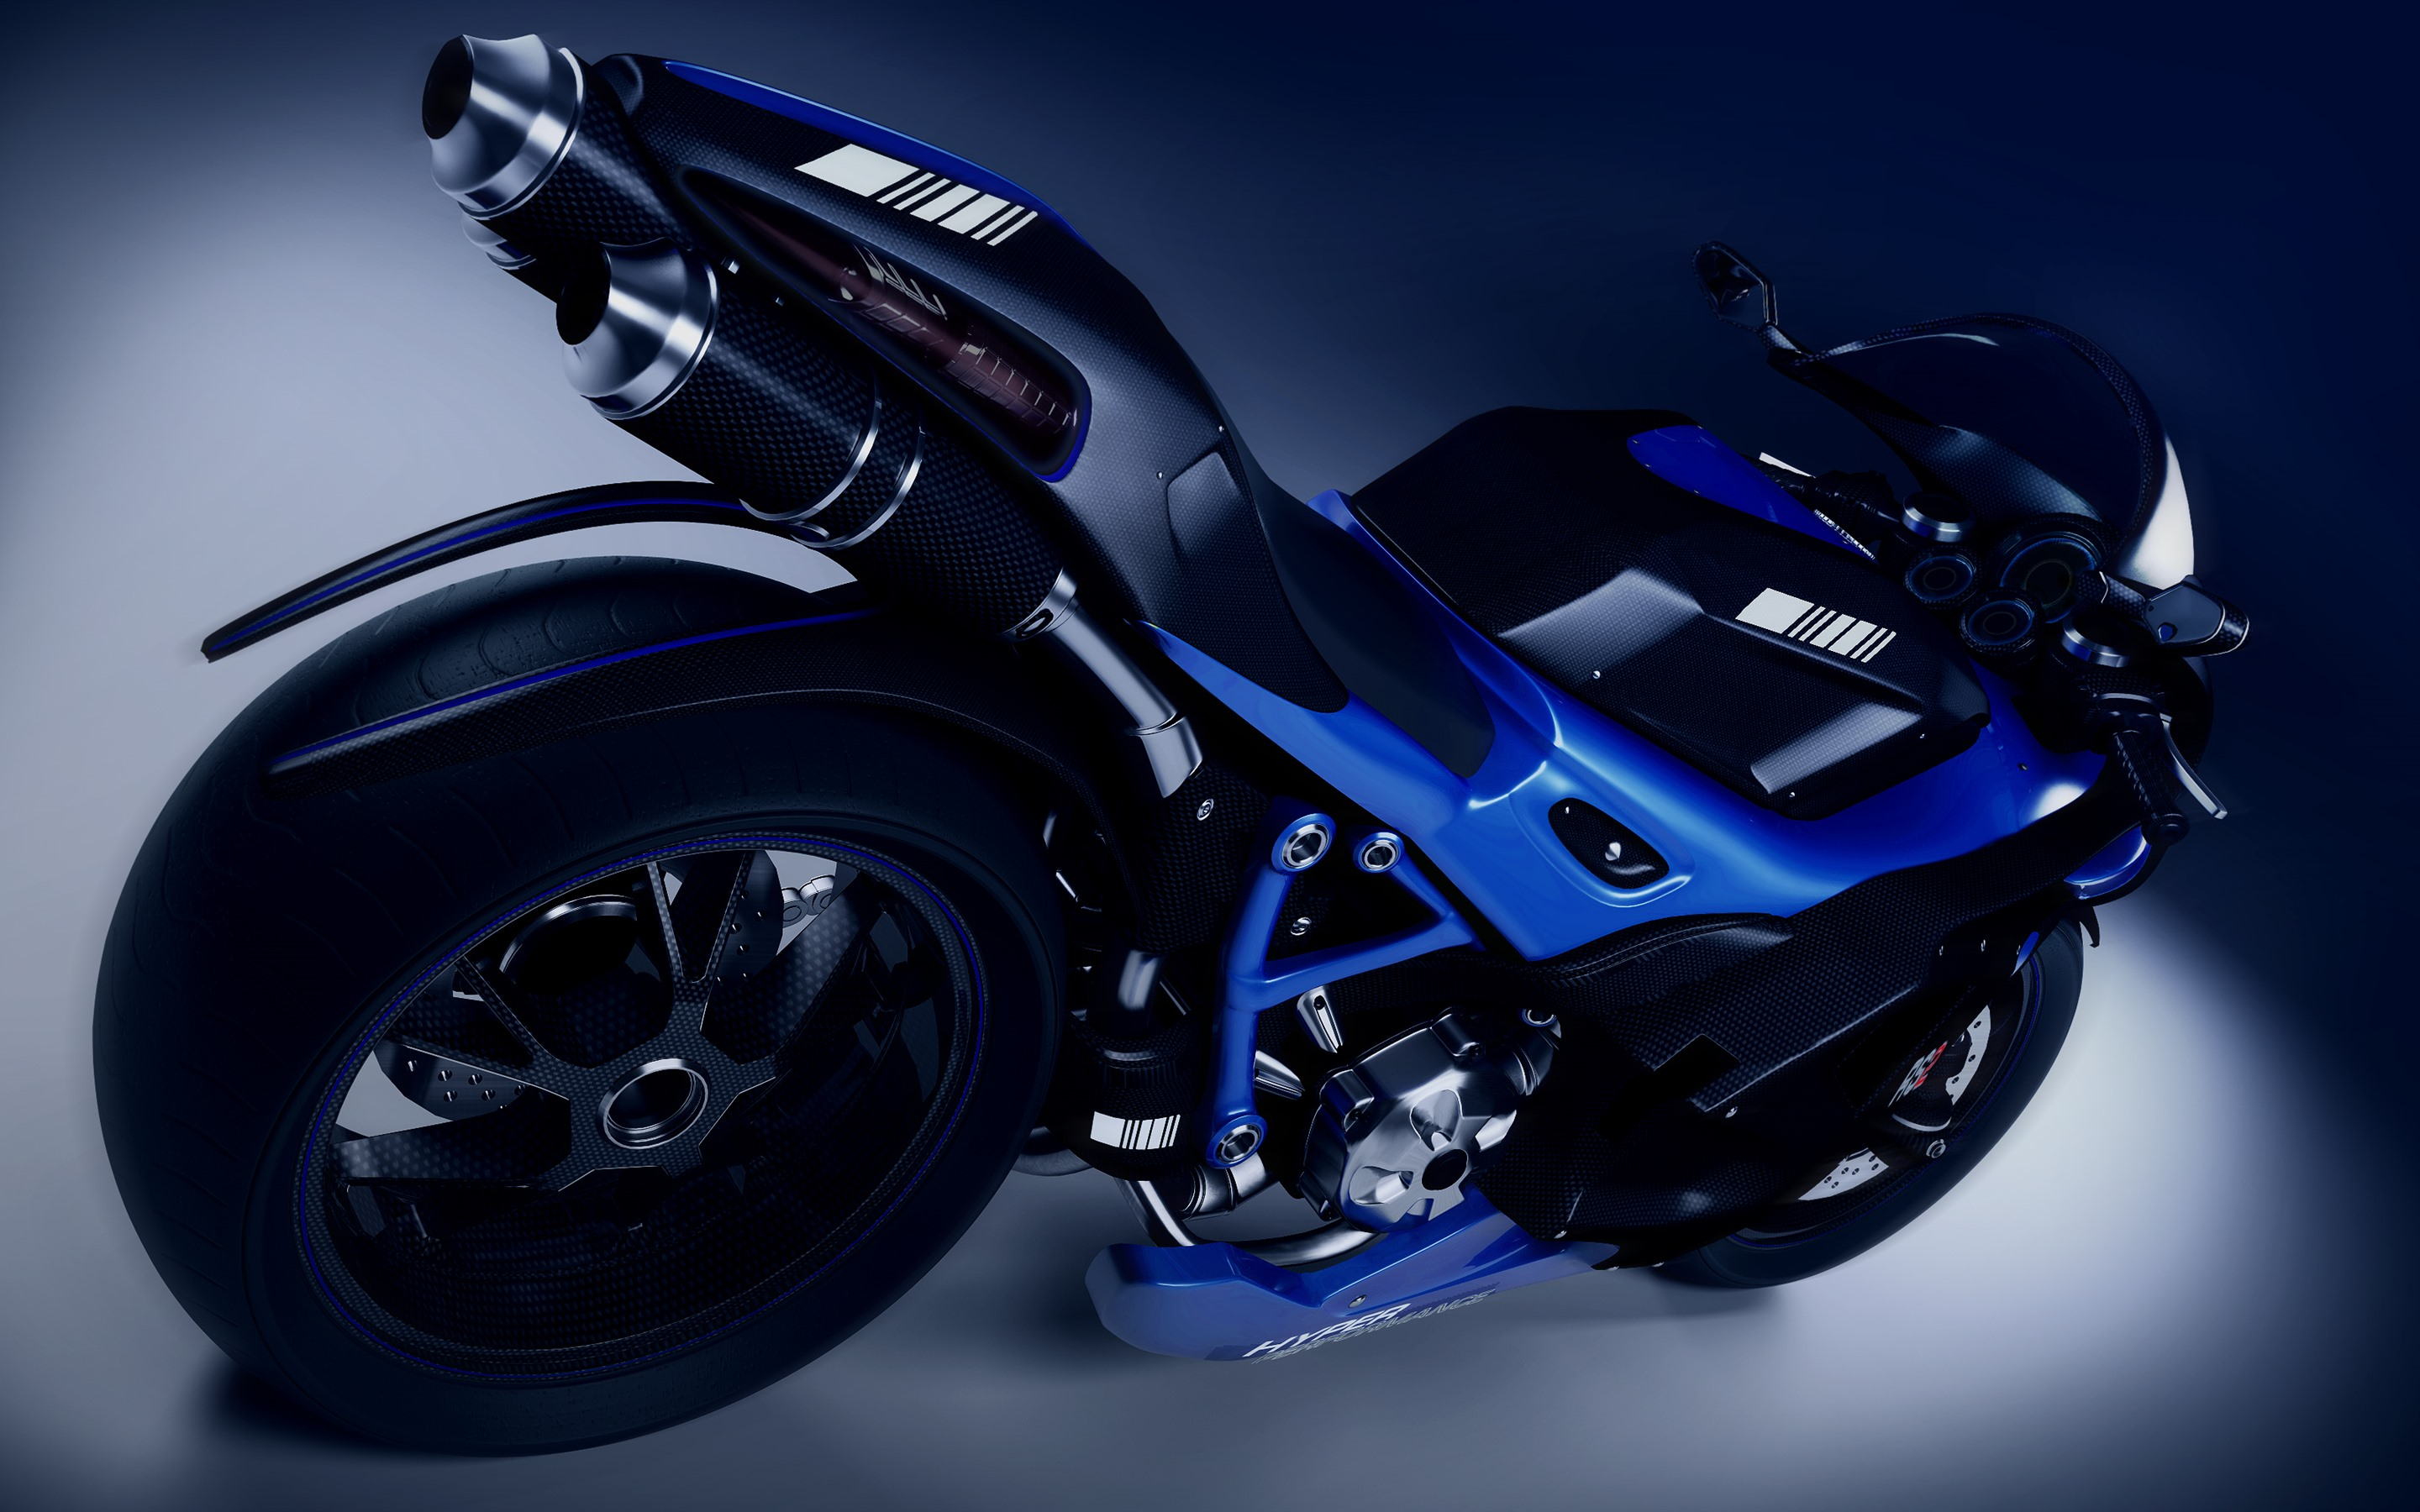 Wallpaper Blue Motorcycle Wheel 2880x1800 Hd Picture Image